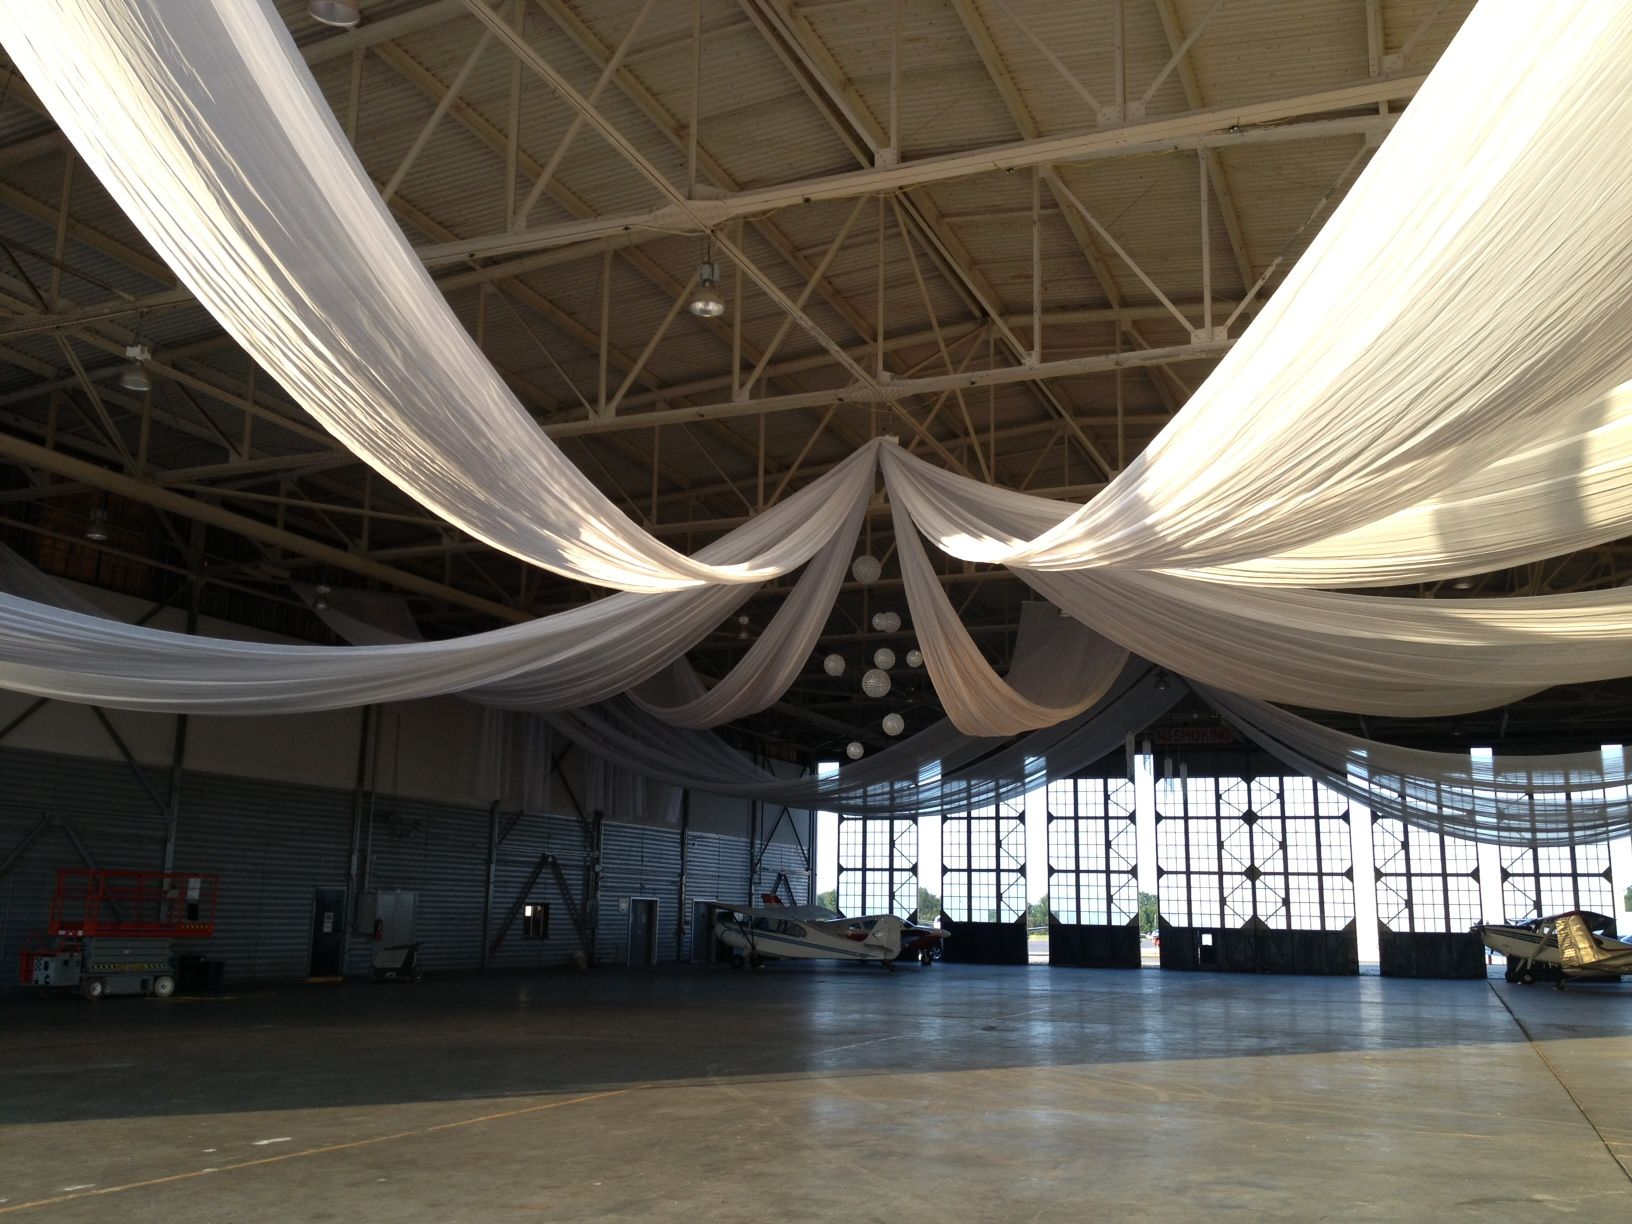 Airplane Hangar Wedding: Airplane Hangar Wedding...how Cool That I Found A Pic For